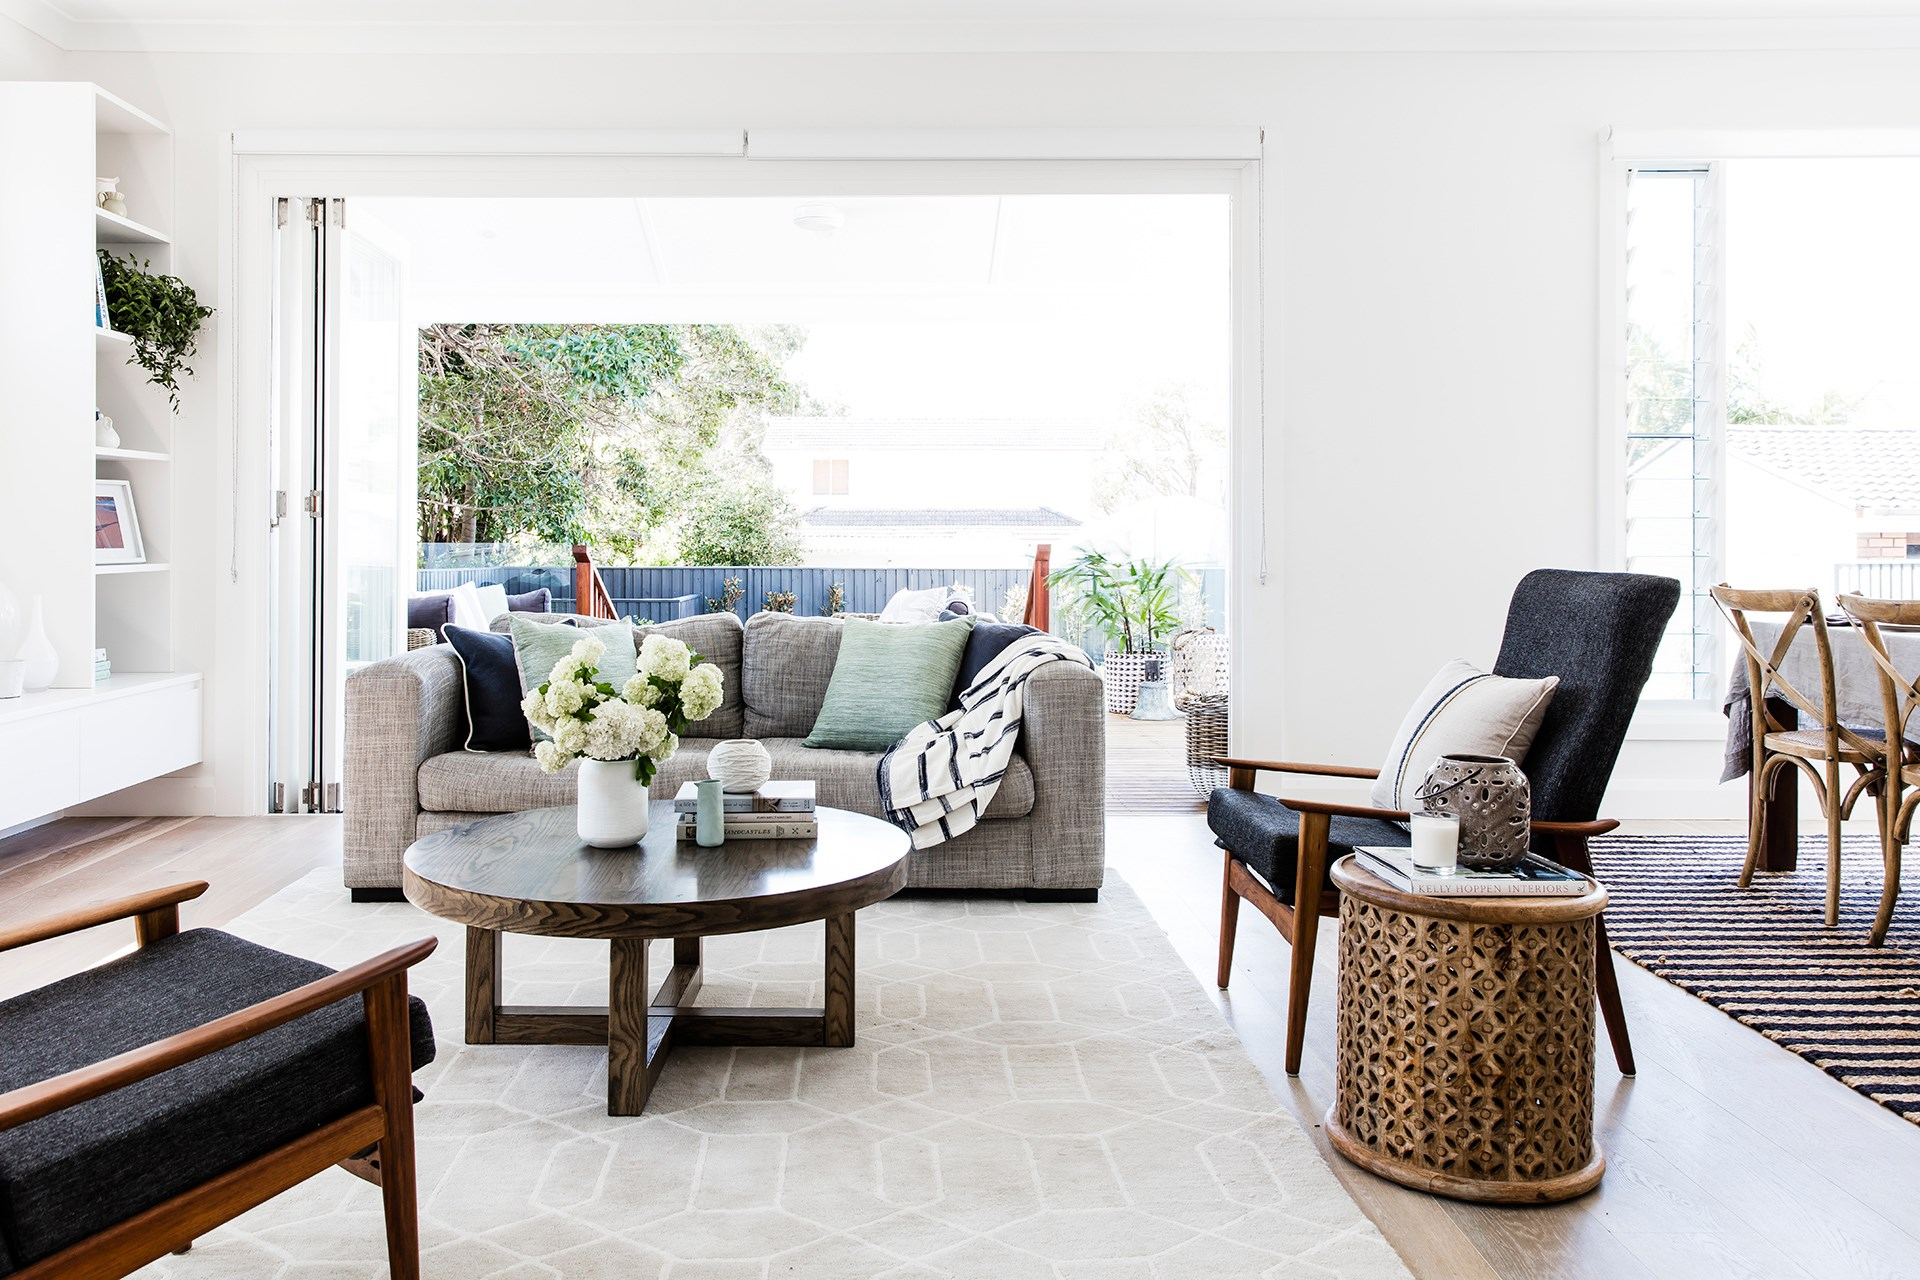 Accessories such as books, flowers and candles add personality to the living room of this [New England-inspired home](http://www.homestolove.com.au/serial-renovators-triumph-with-new-england-inspired-home-3034). Photo: Maree Homer / *Australian House & Garden*